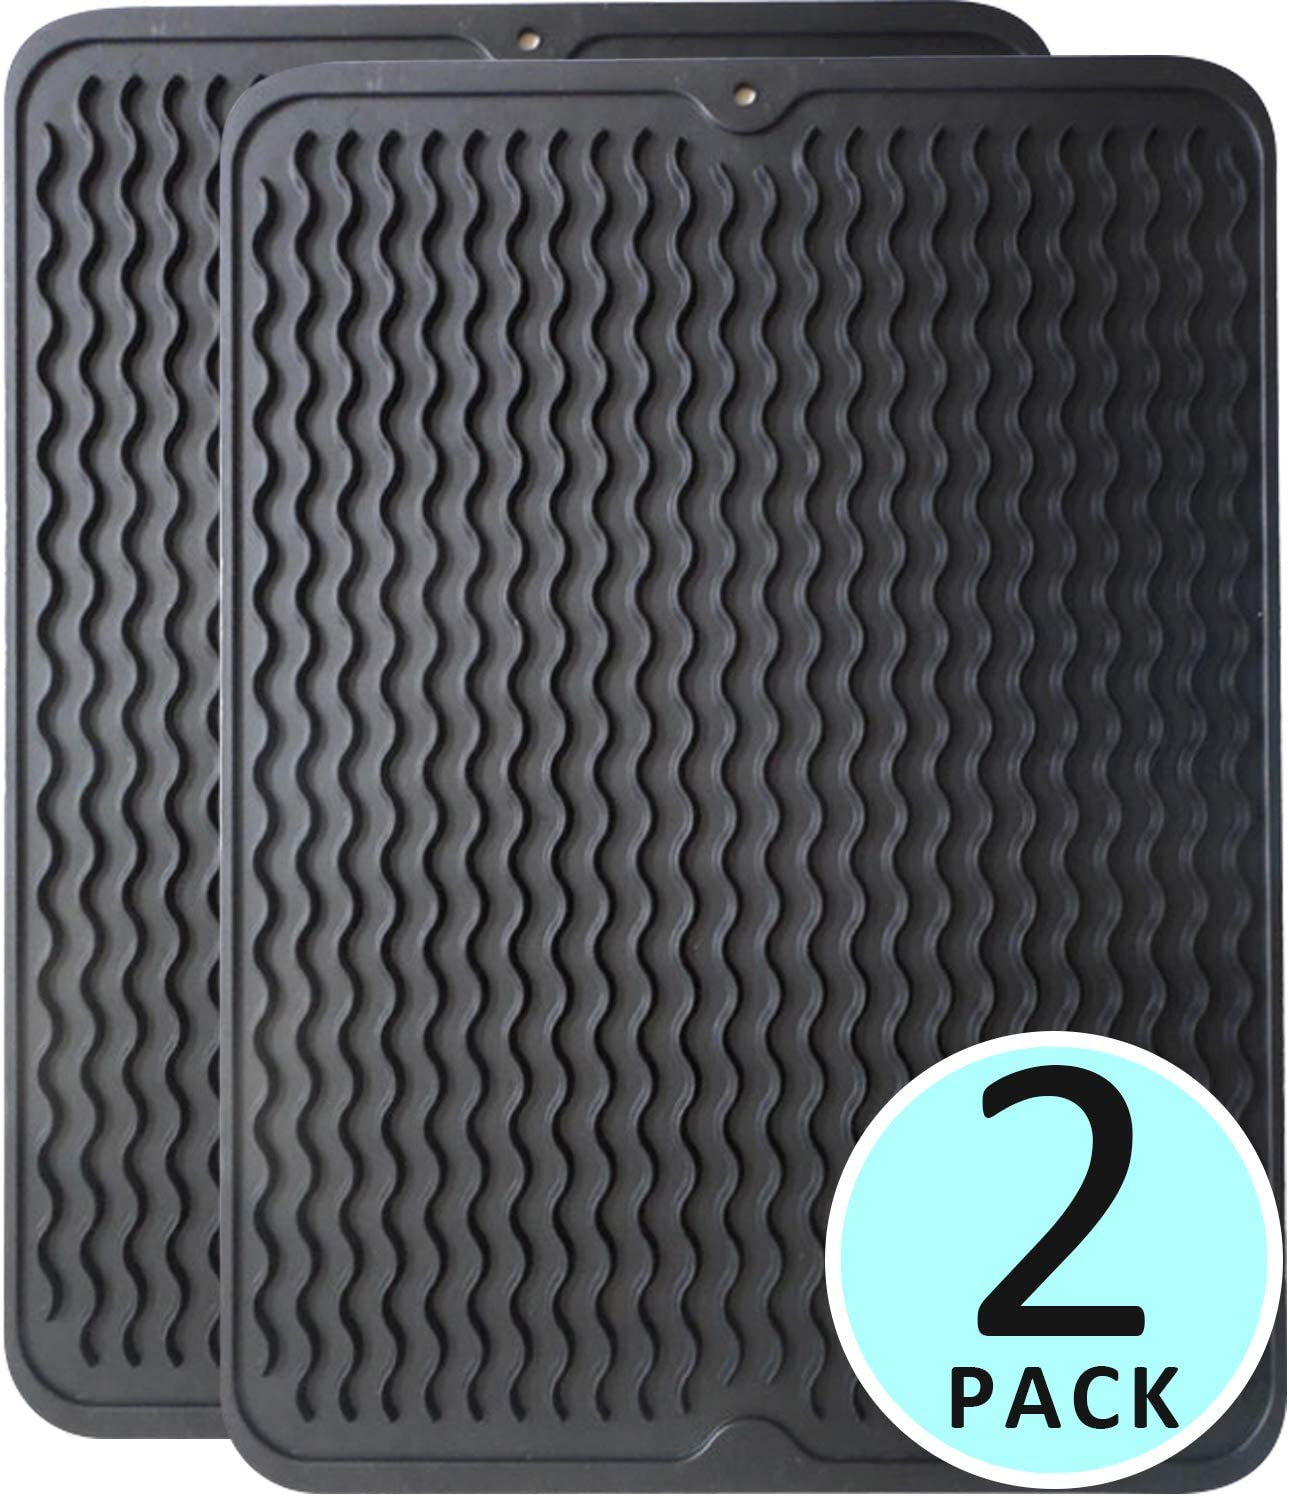 Carrotez 2 Pack Silicone Drying Mat (Large 15.7''x12''x0.25''), Non-Slip Silicone dish drying mat, Easy Clean Dishwasher Safe Heat Resistant Eco-Friendly Trivet, Pot Holder,Dish Rack - Black